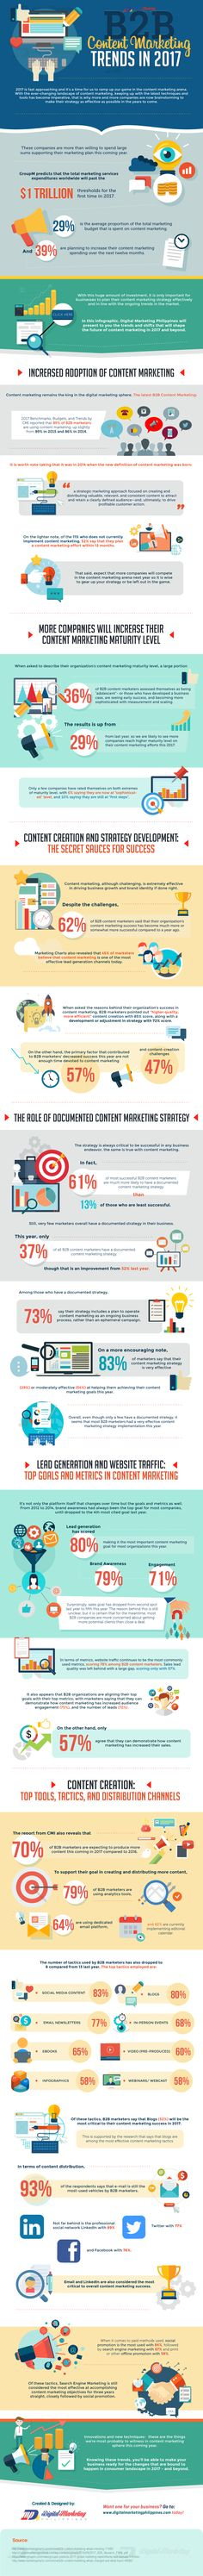 The Hottest B2B Content Marketing Trends in 2017 (Infographic) / Digital Information World